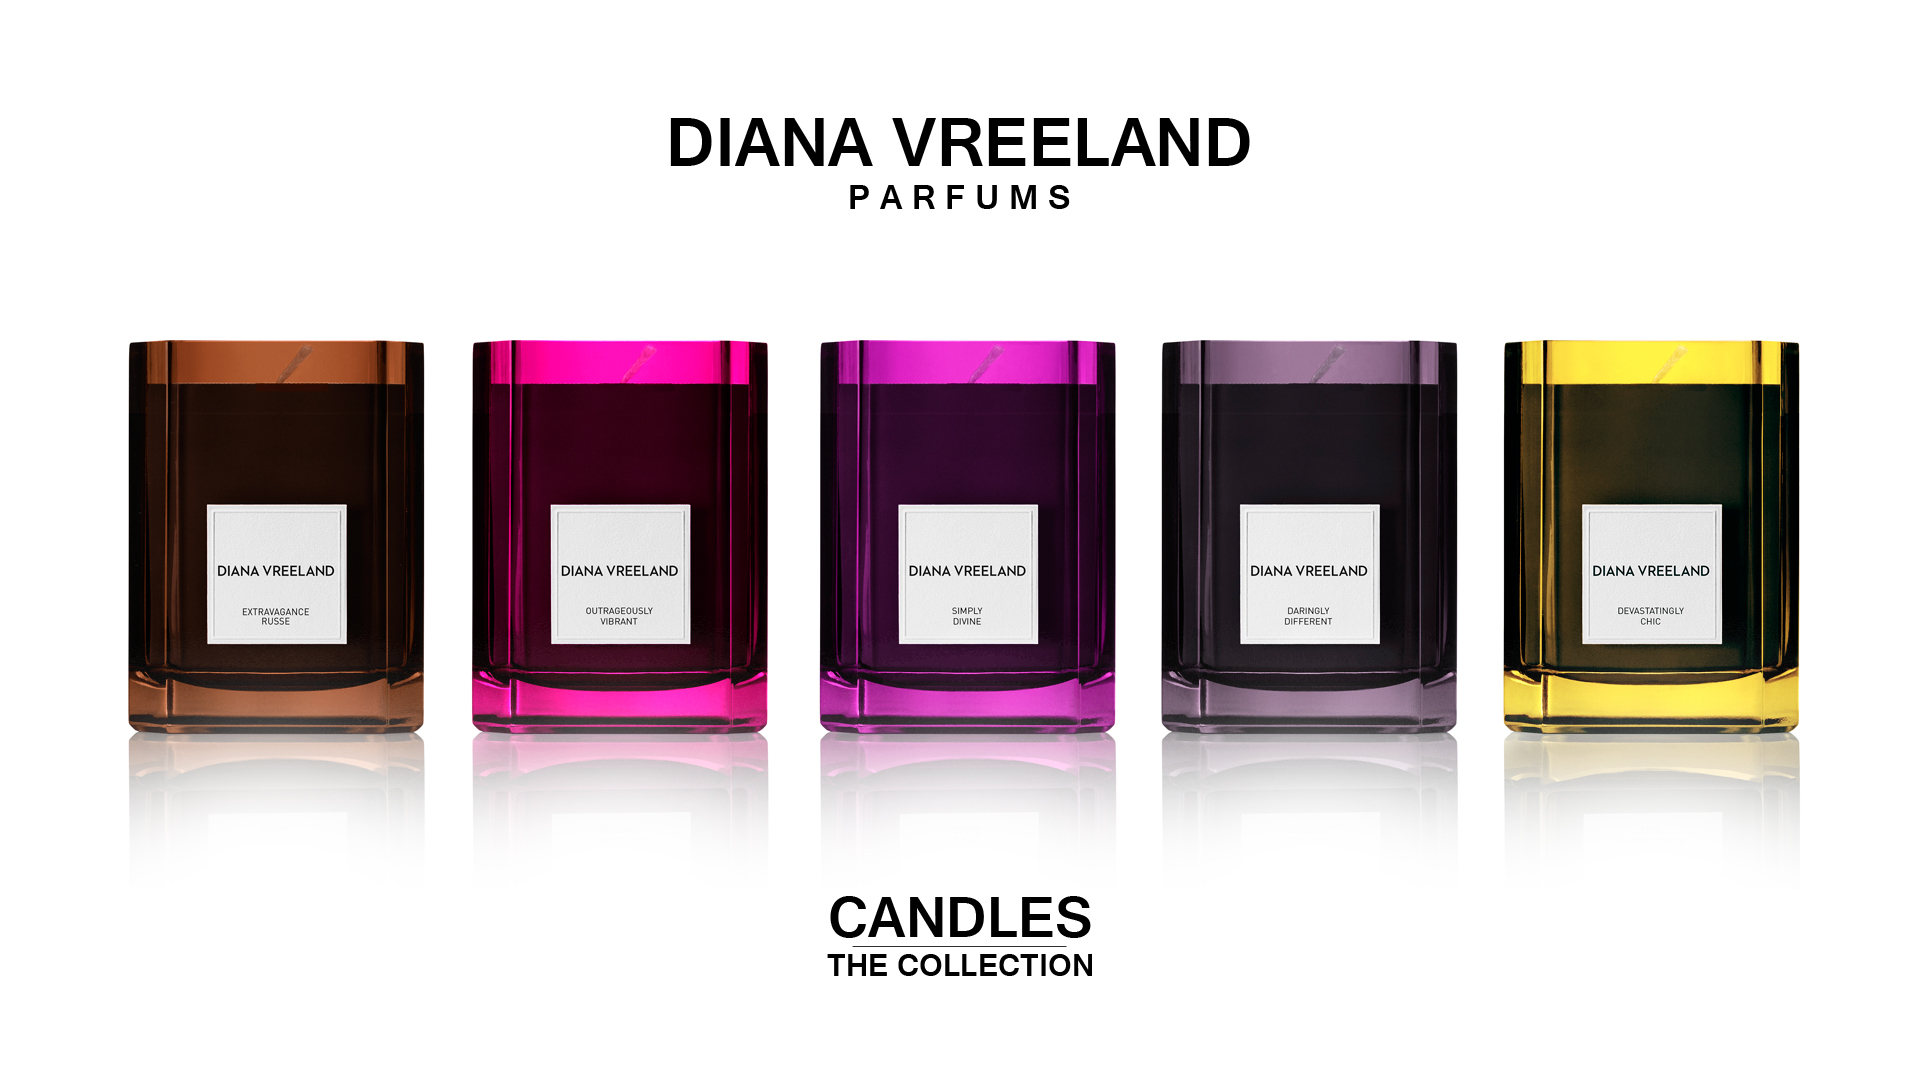 DIANA VREELAND CANDLES - THE COLLECTION